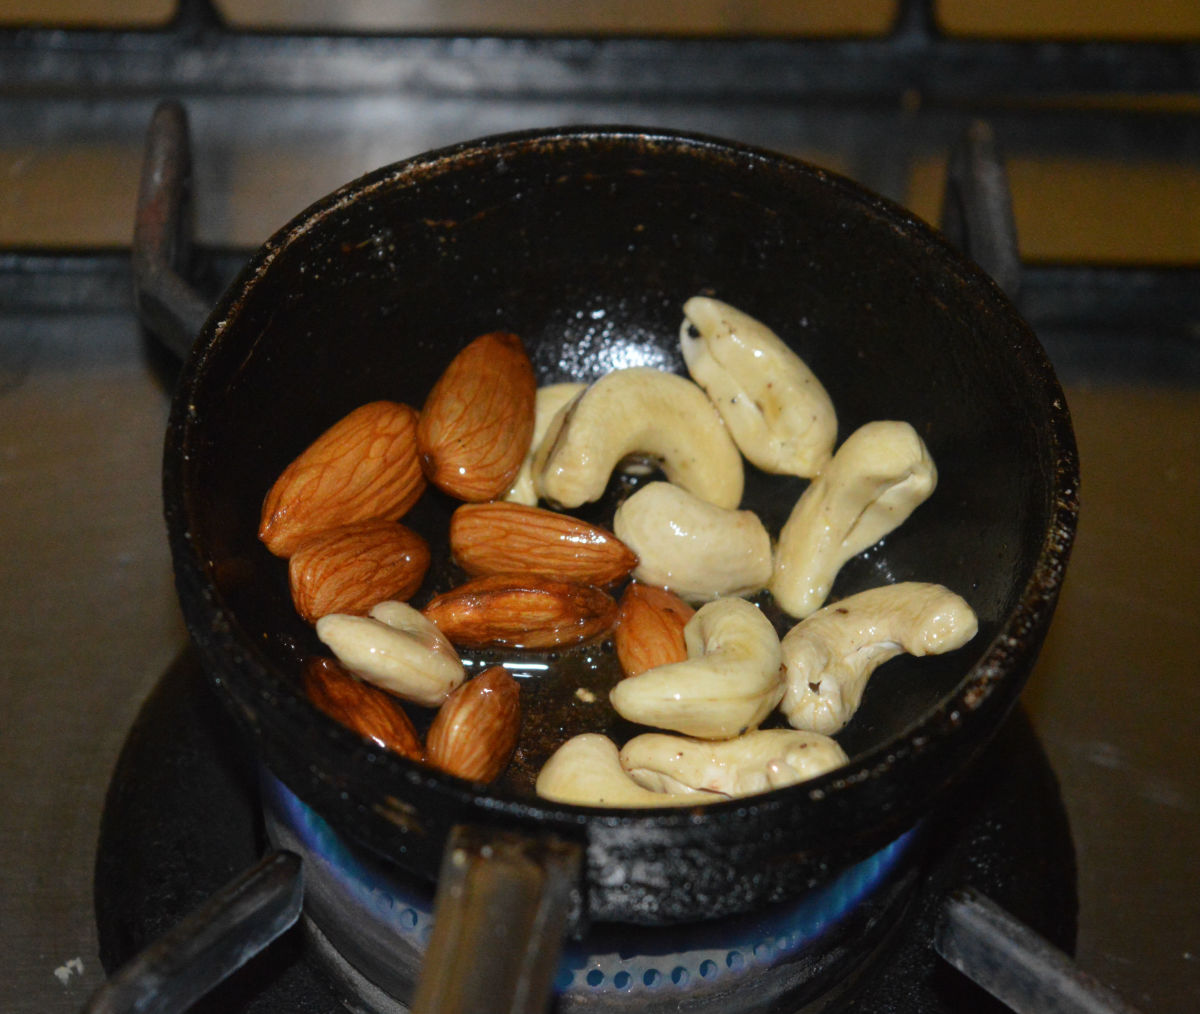 Fry the cashew nuts and almonds in some ghee until they become crispy. Collect them on a plate.